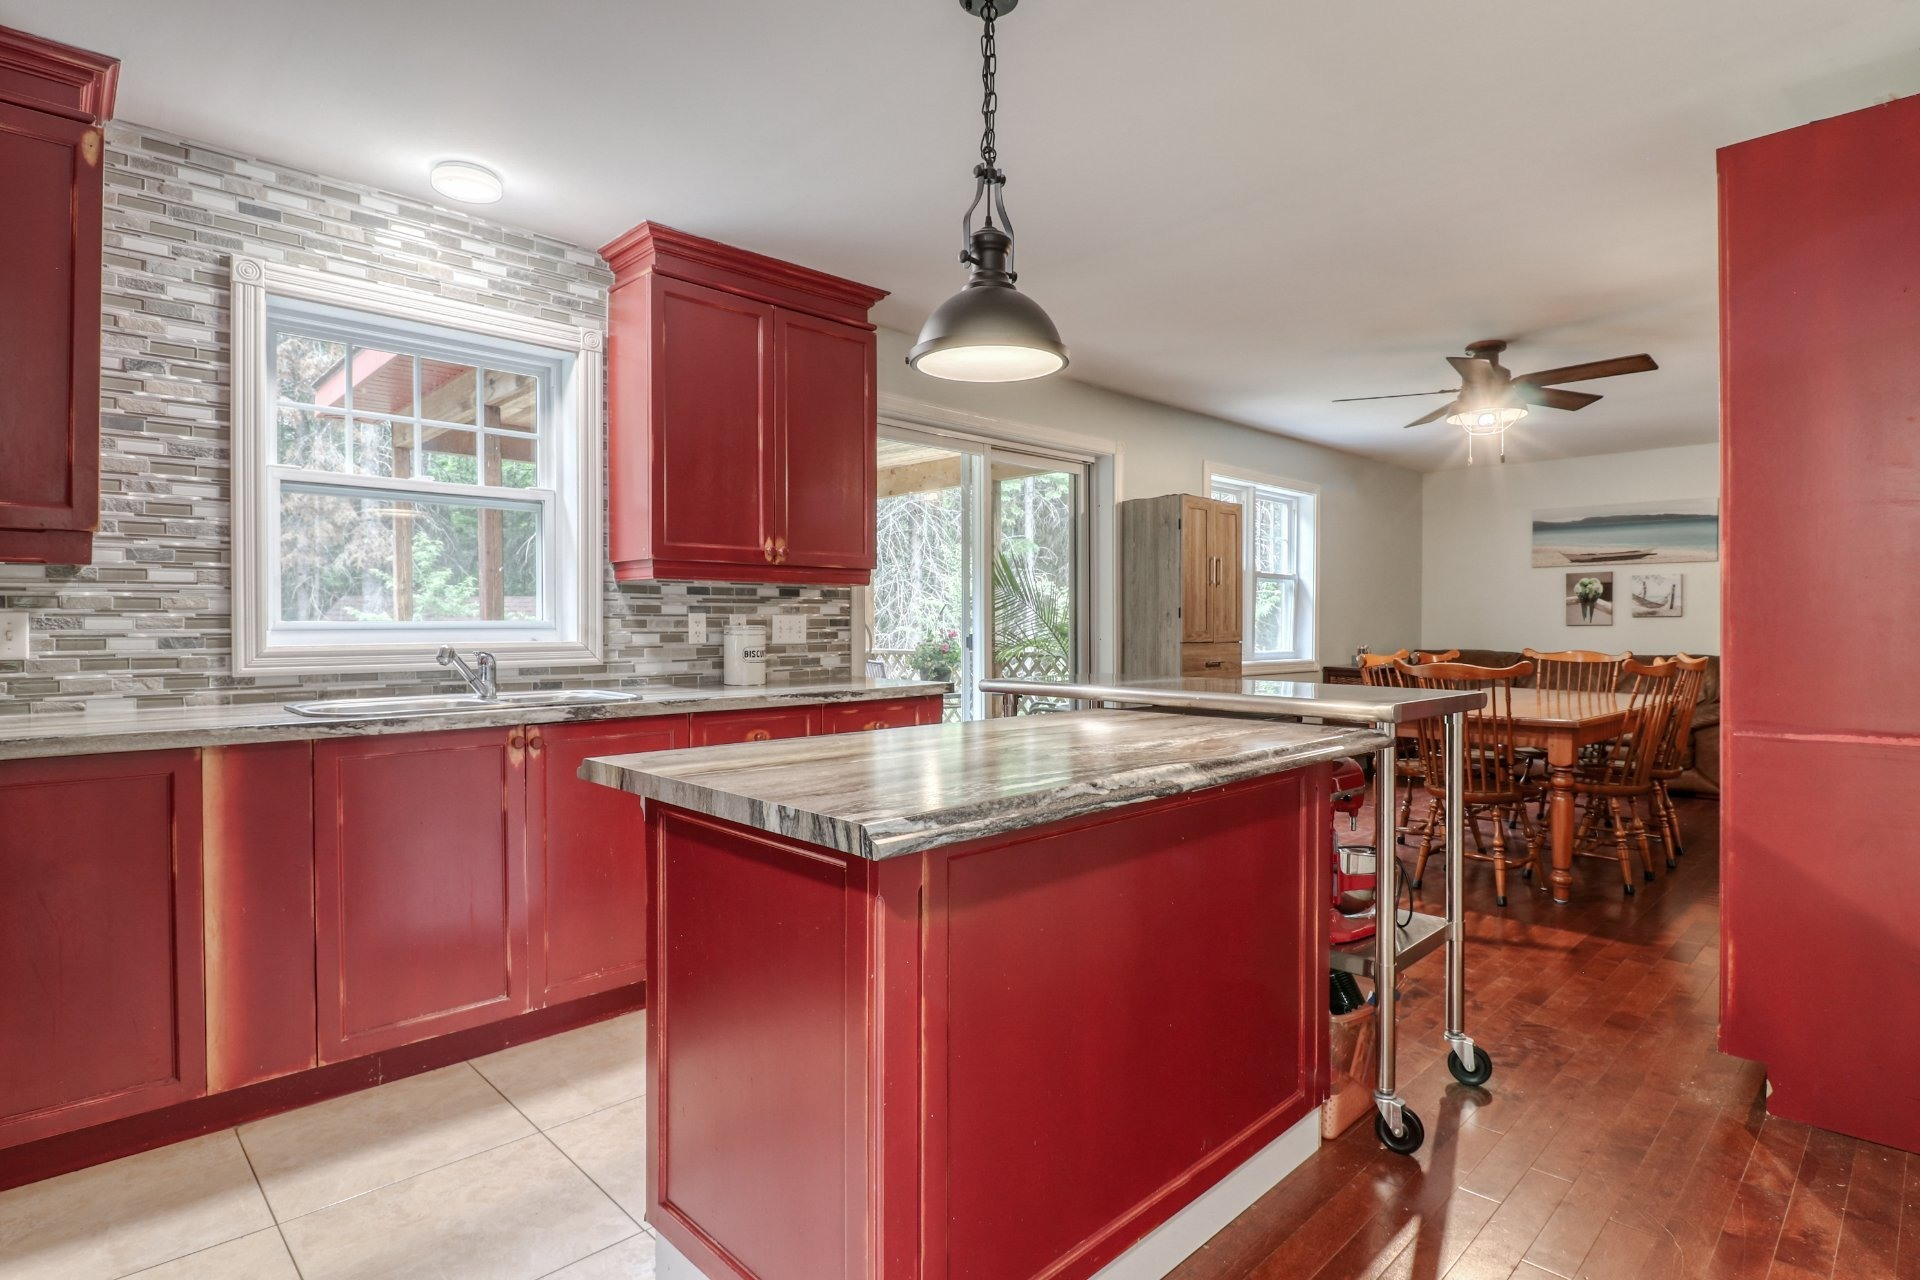 image 2 - House For sale Rawdon - 9 rooms